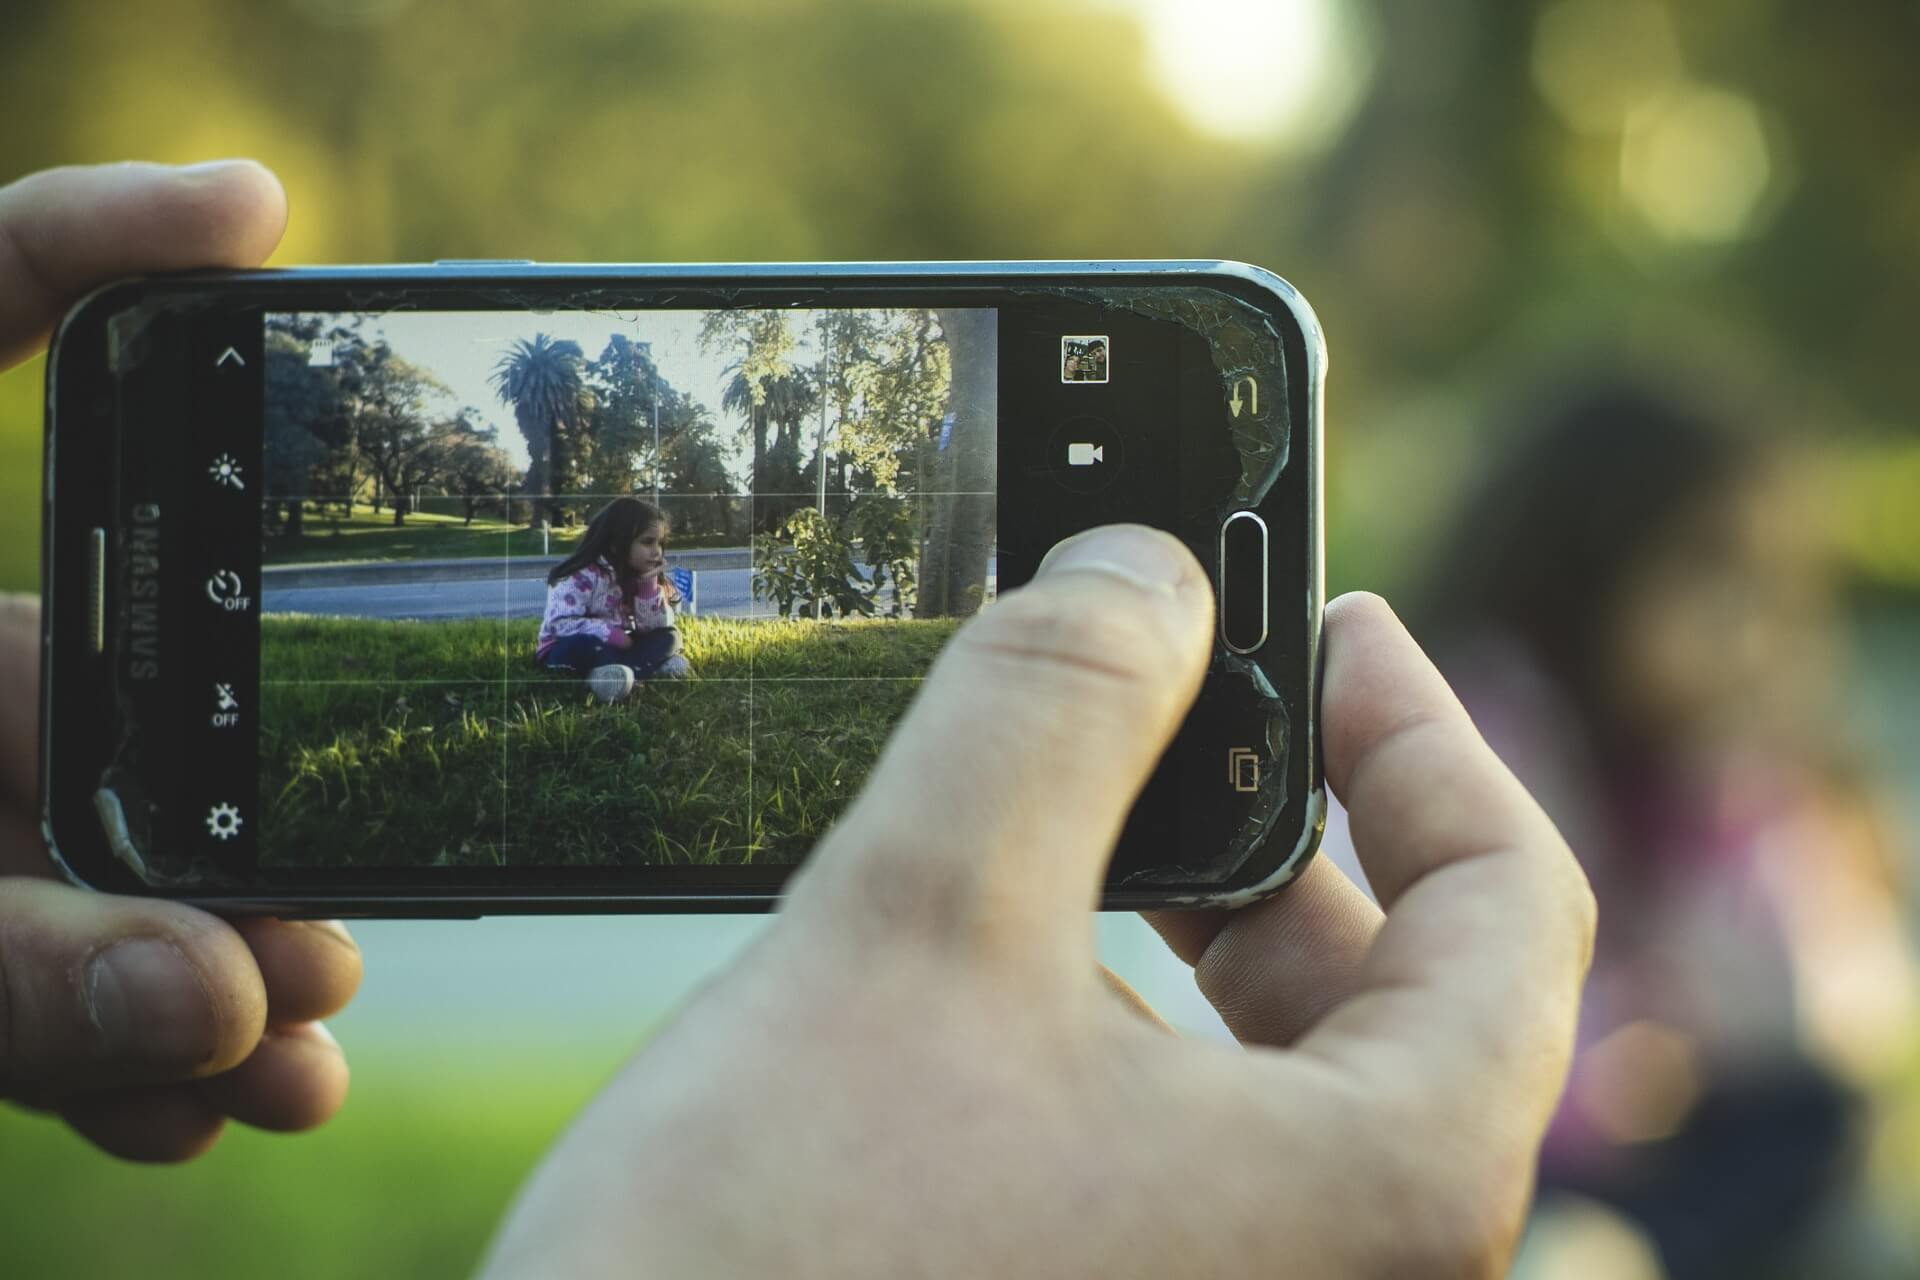 content/en-global/images/repository/isc/2020/is-it-safe-to-post-photos-of-your-kids-online.jpg